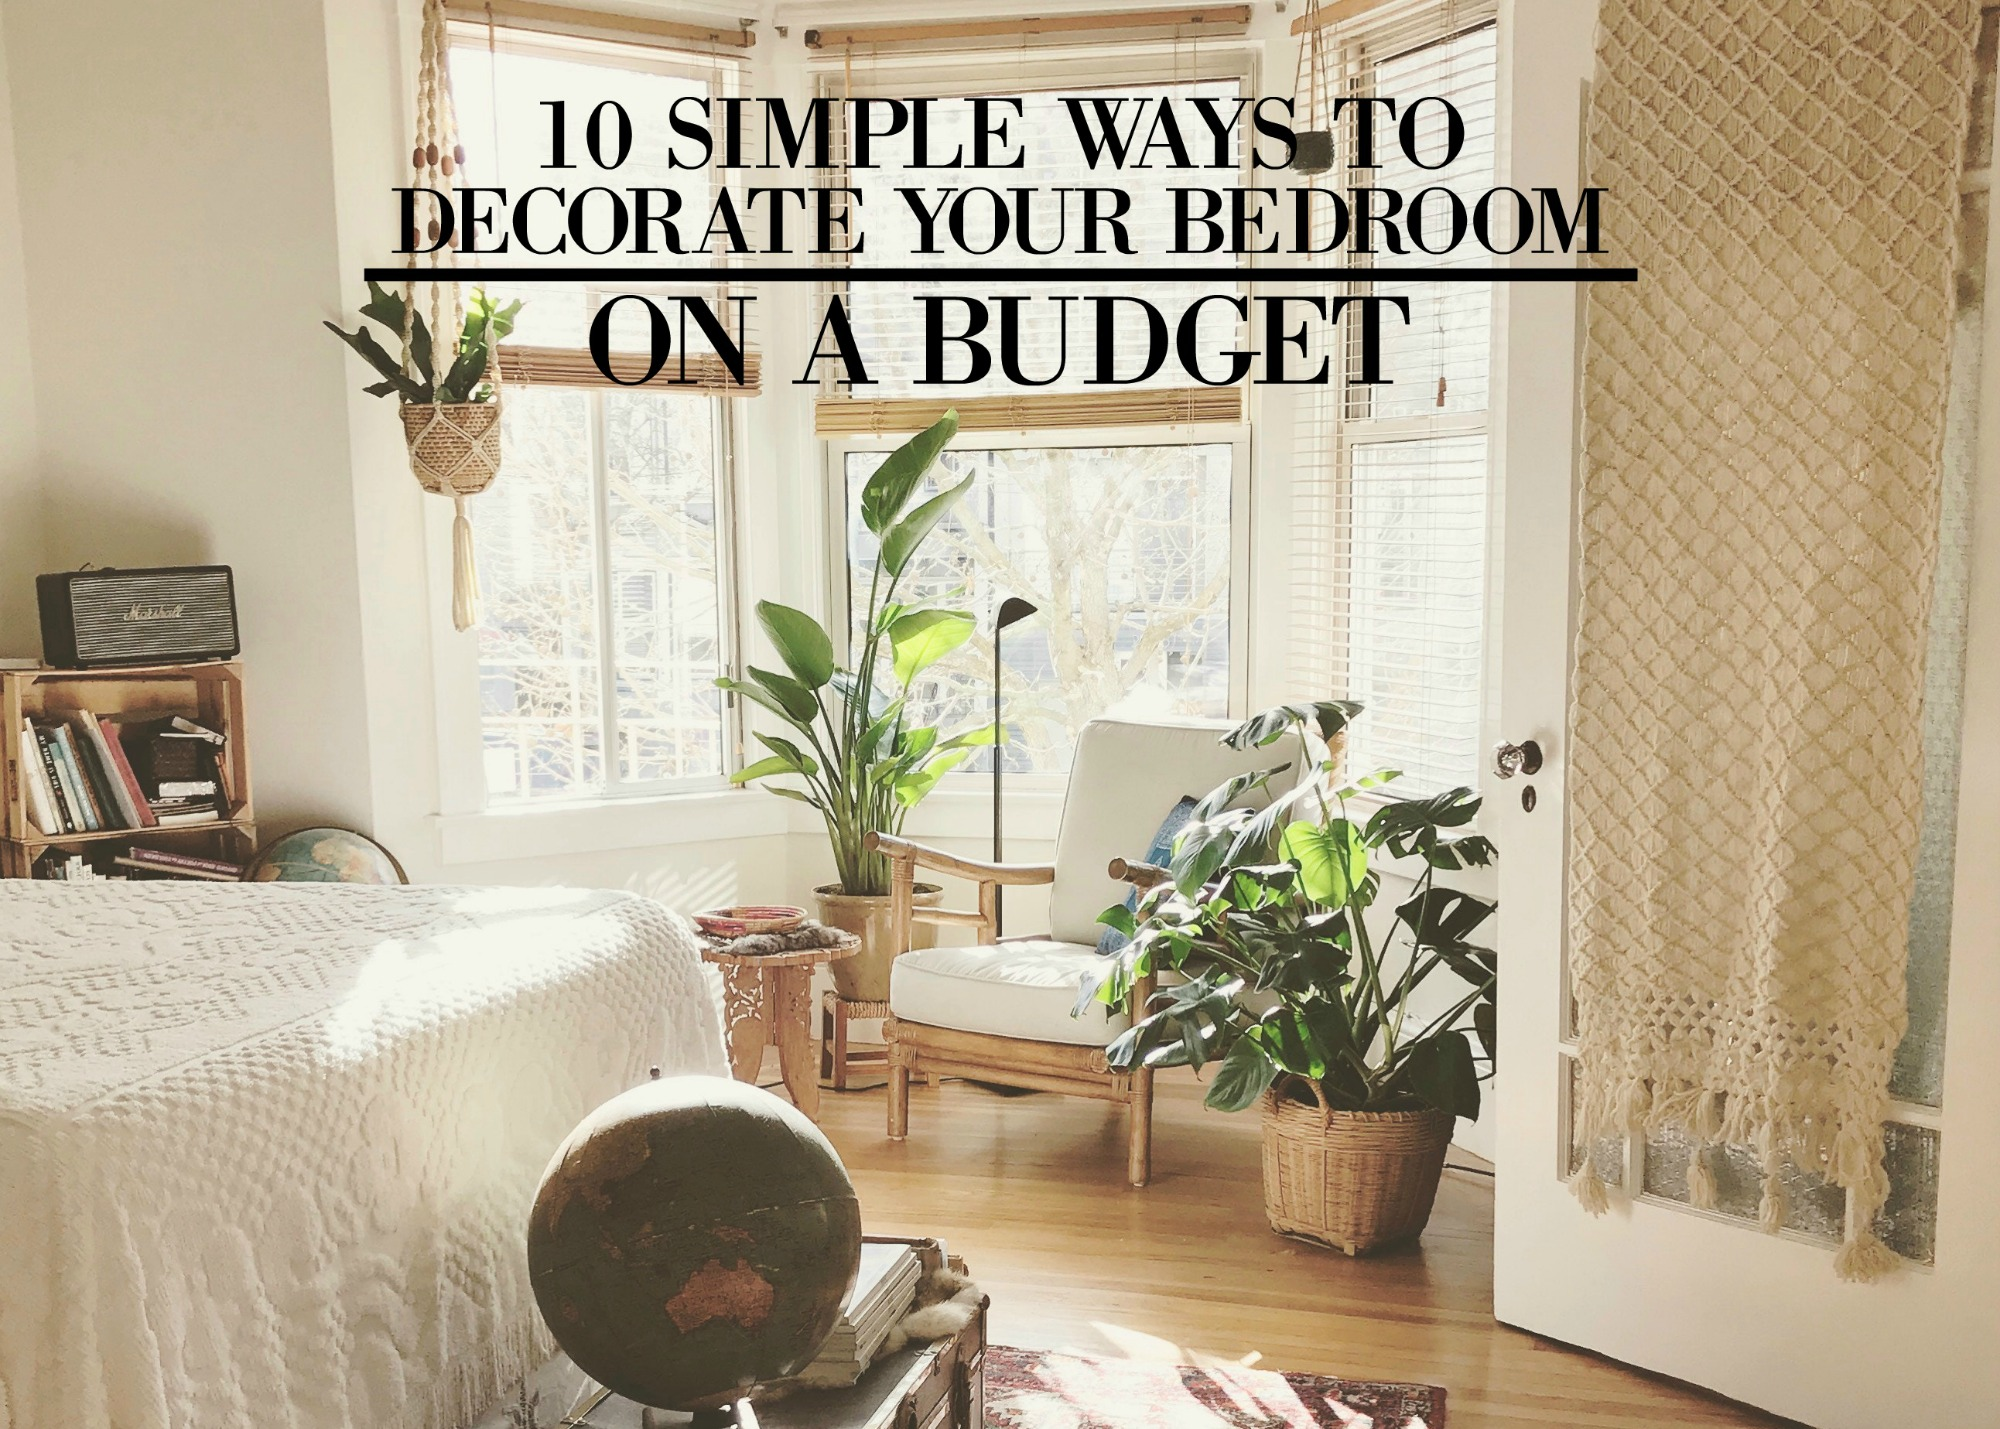 10 simple ways to decorate your bedroom on a budget 20246 | timothy buck 309898 1